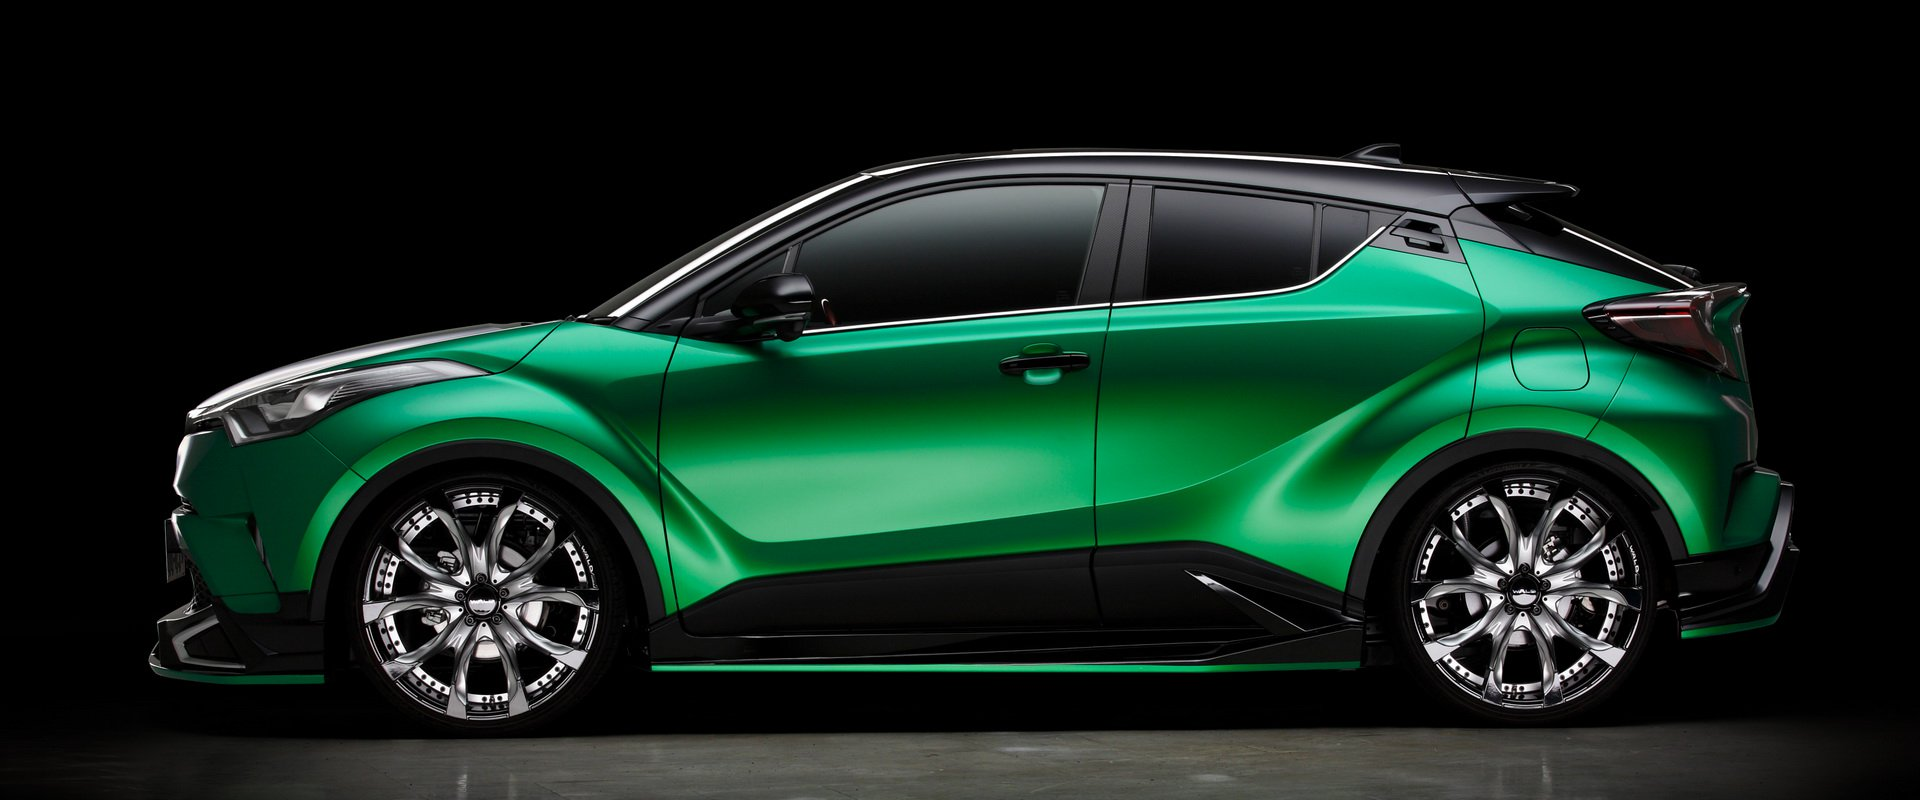 Toyota C-HR by Wald International (33)